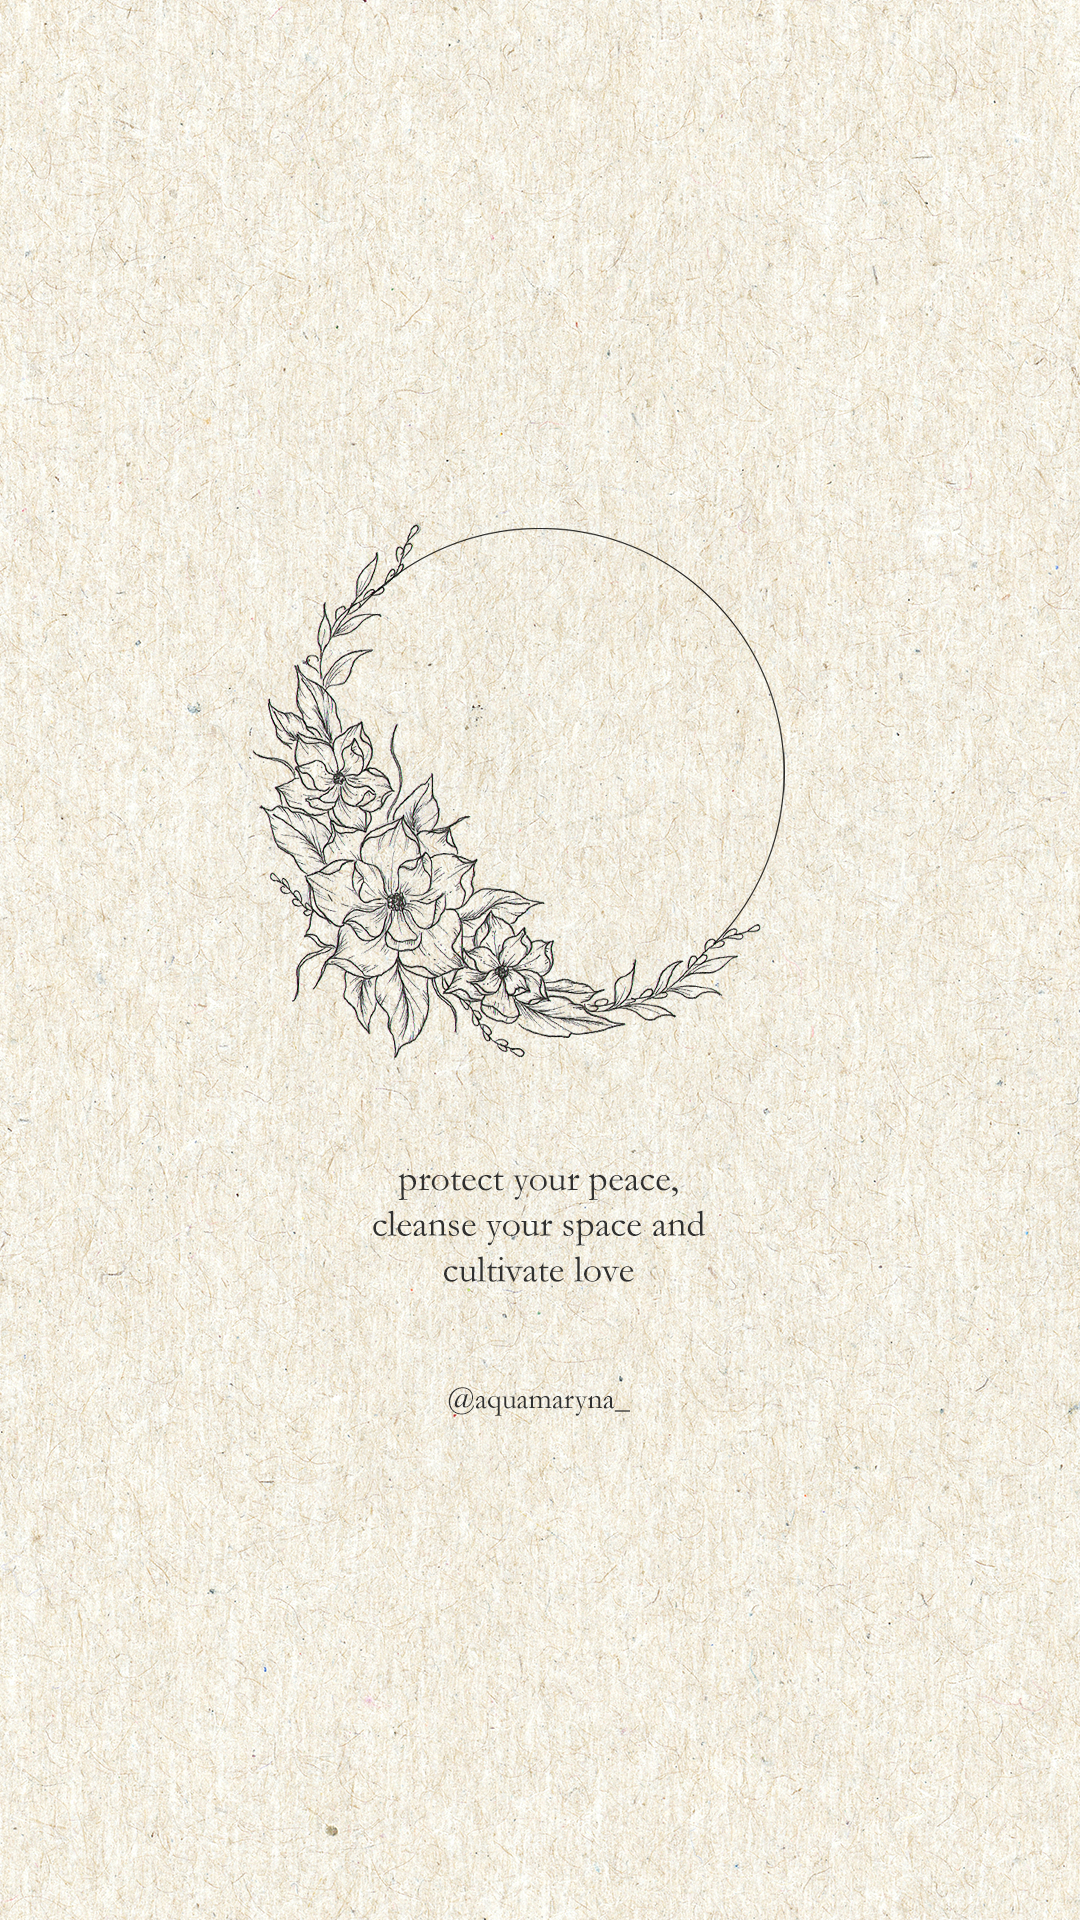 protect your peace quotes / inner balance quotes / inner peace quotes / floral tattoo design / flower circle tattoo design / minimalistic flower tattoo / cleanse your mind quote / energy quotes / self love quote / self growth quotes /